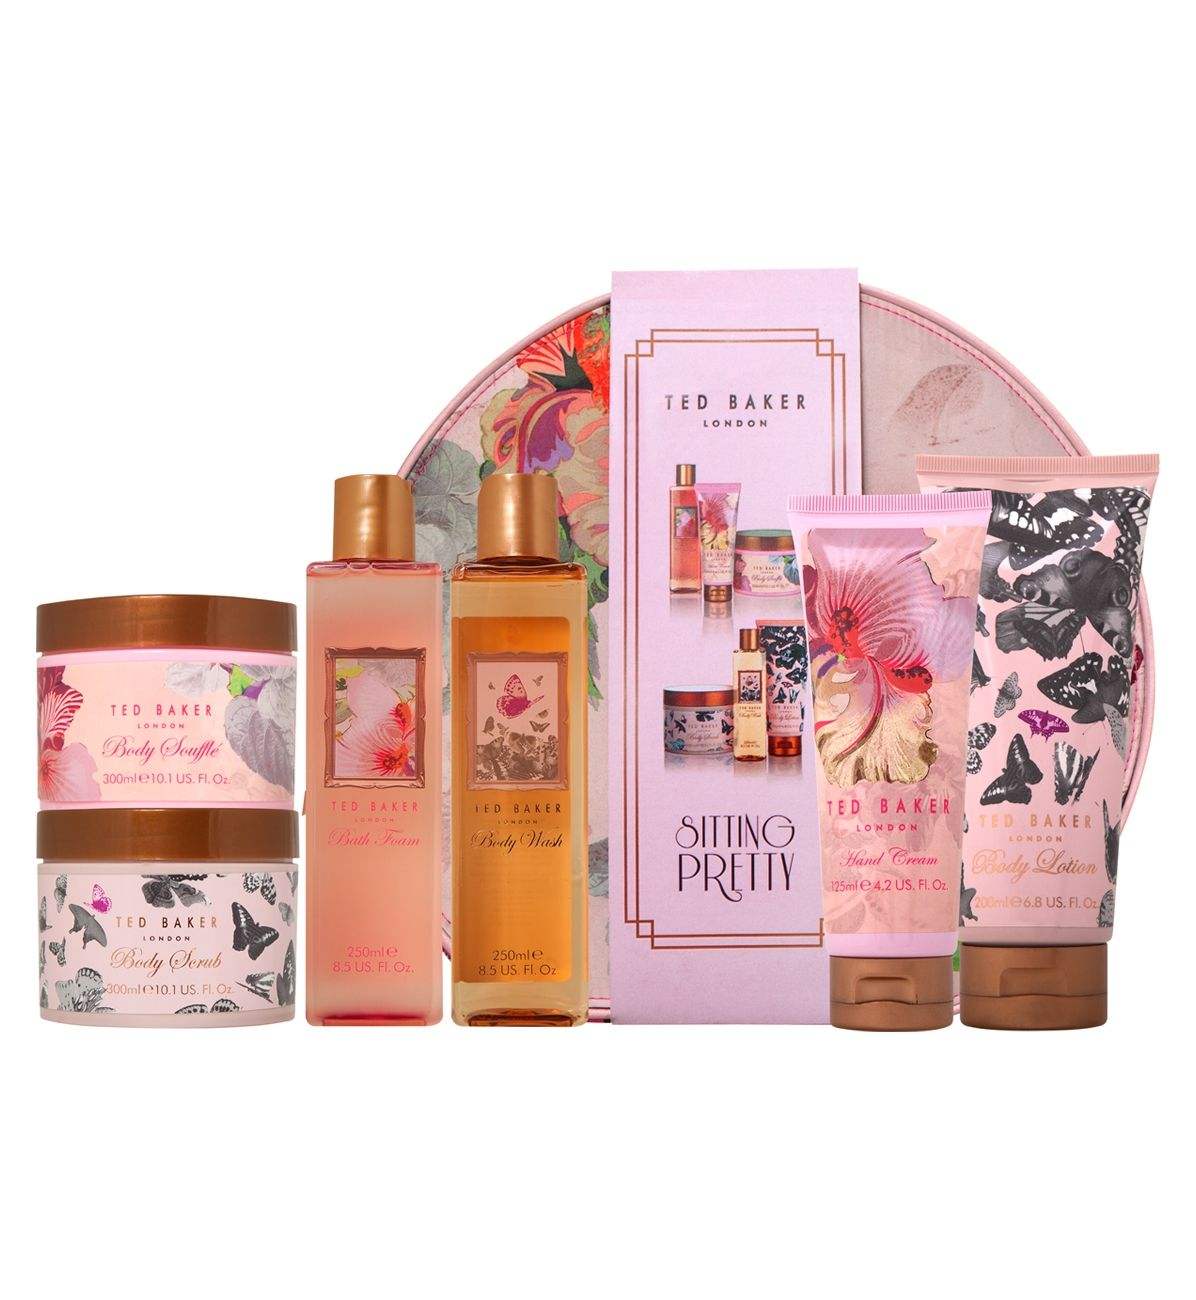 Ted Baker sitting pretty gift set Beauty, Gifts, Baby